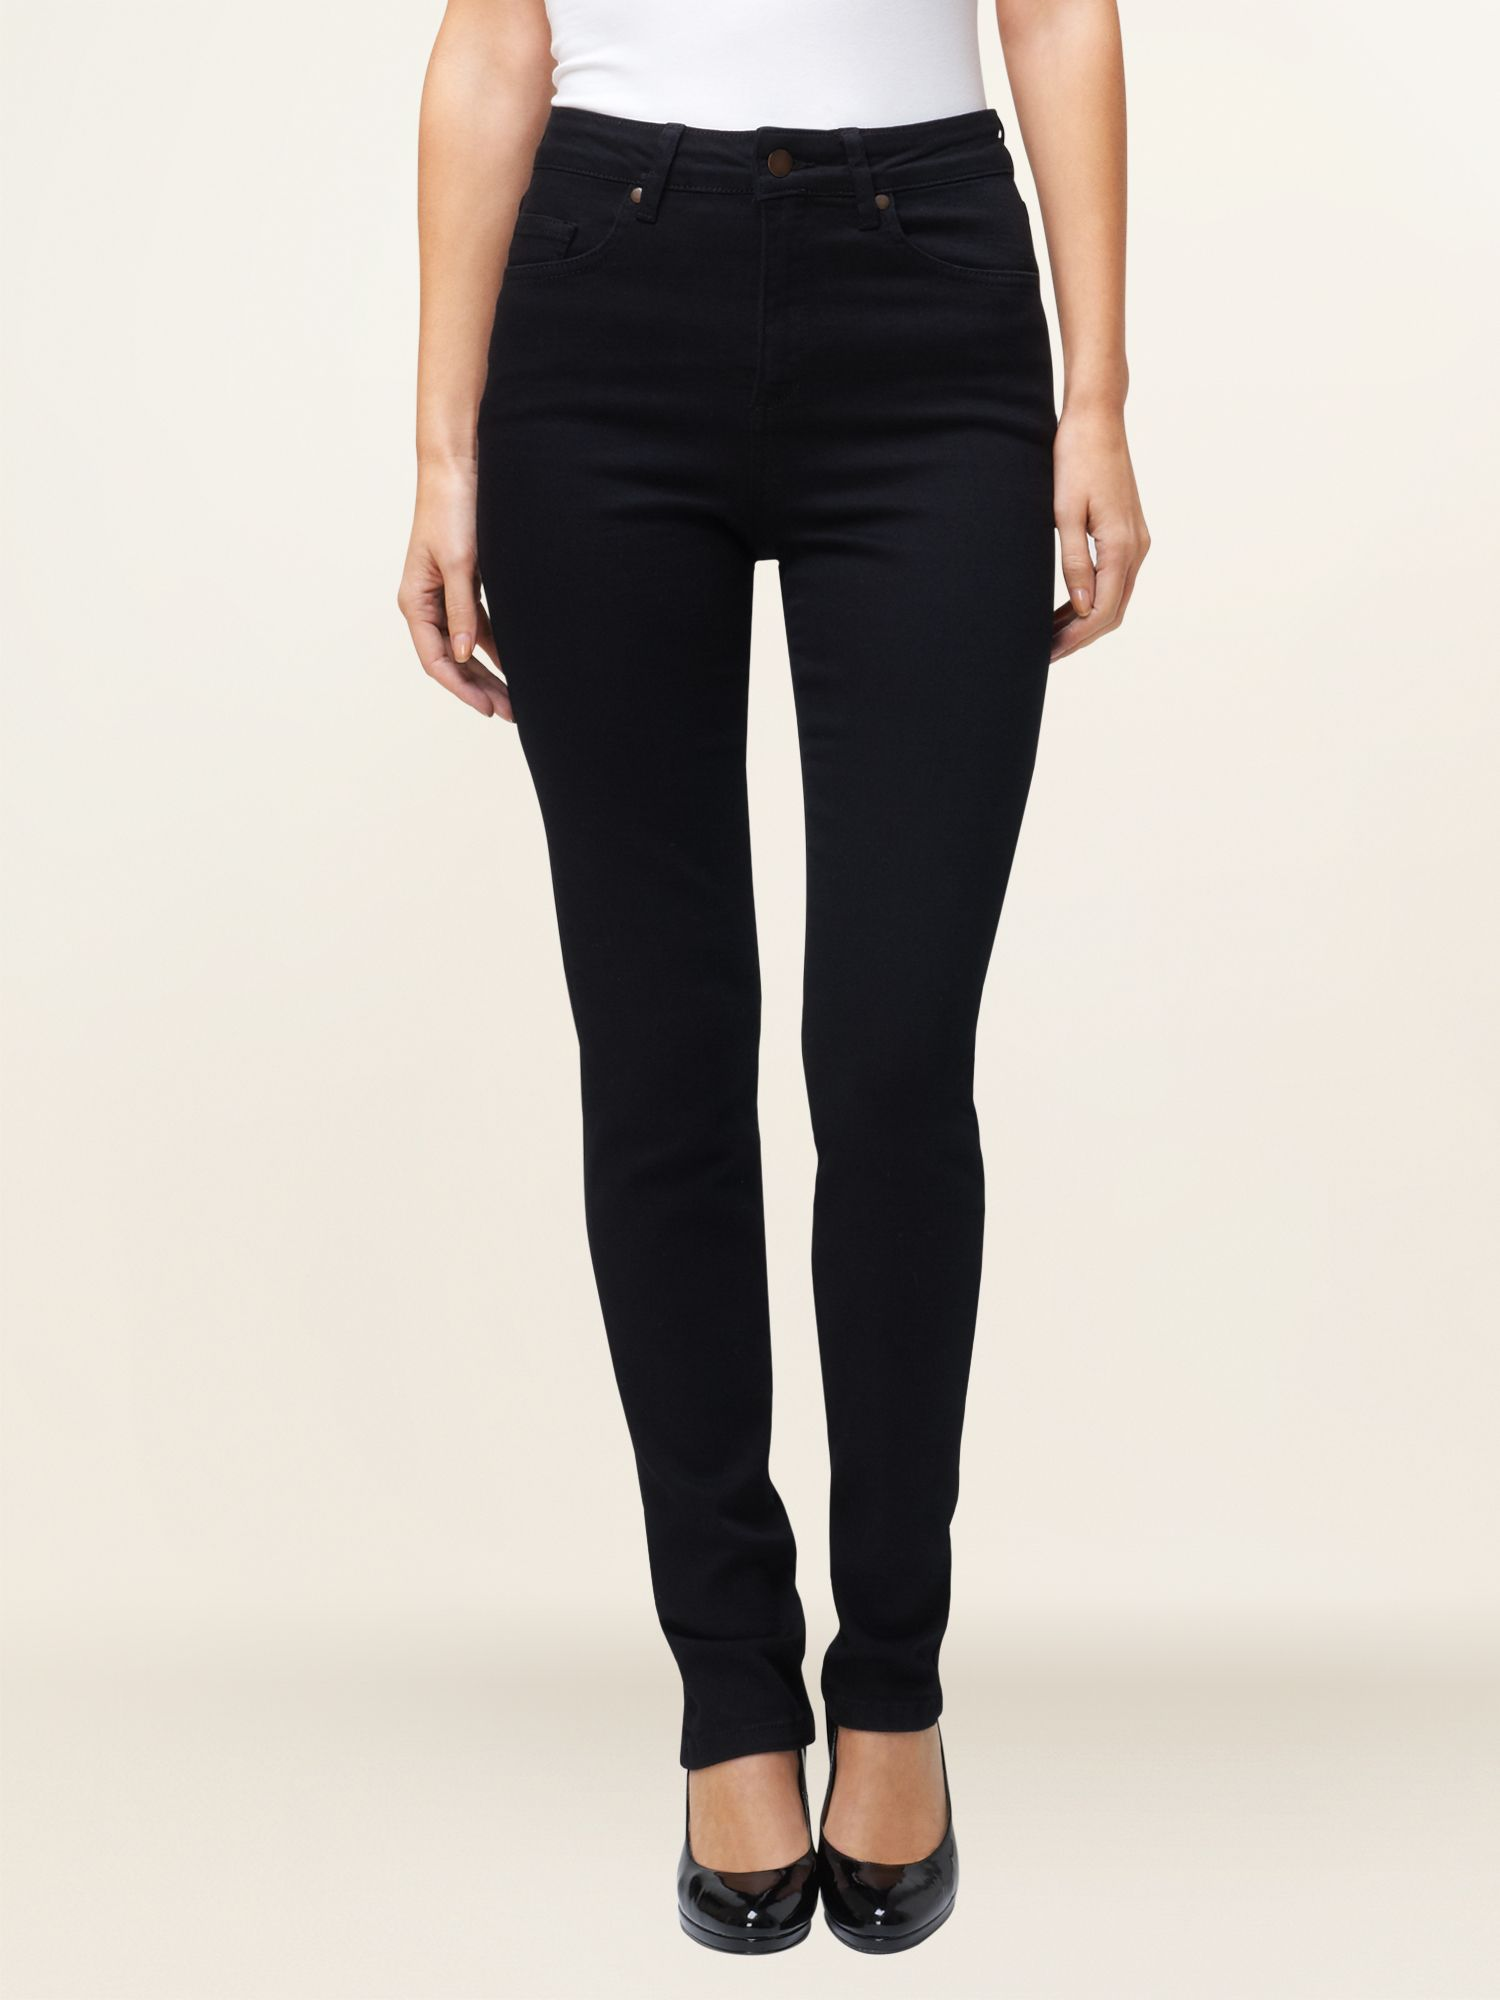 Cora stretch denim jeans